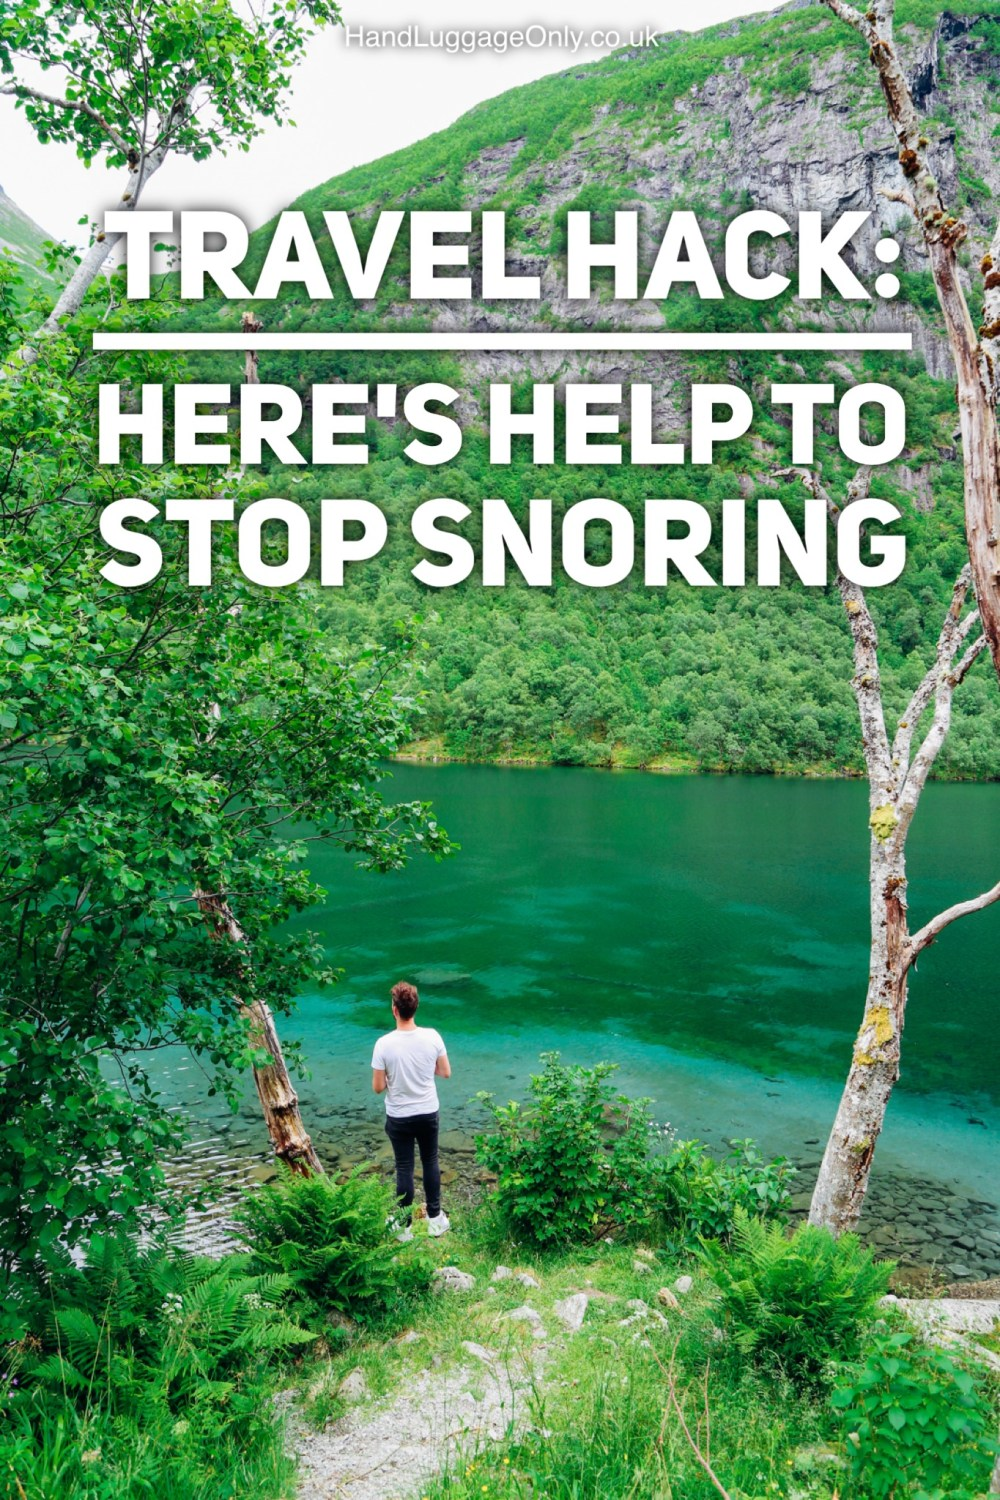 TRAVEL HACK: HERE'S HELP TO STOP SNORING!